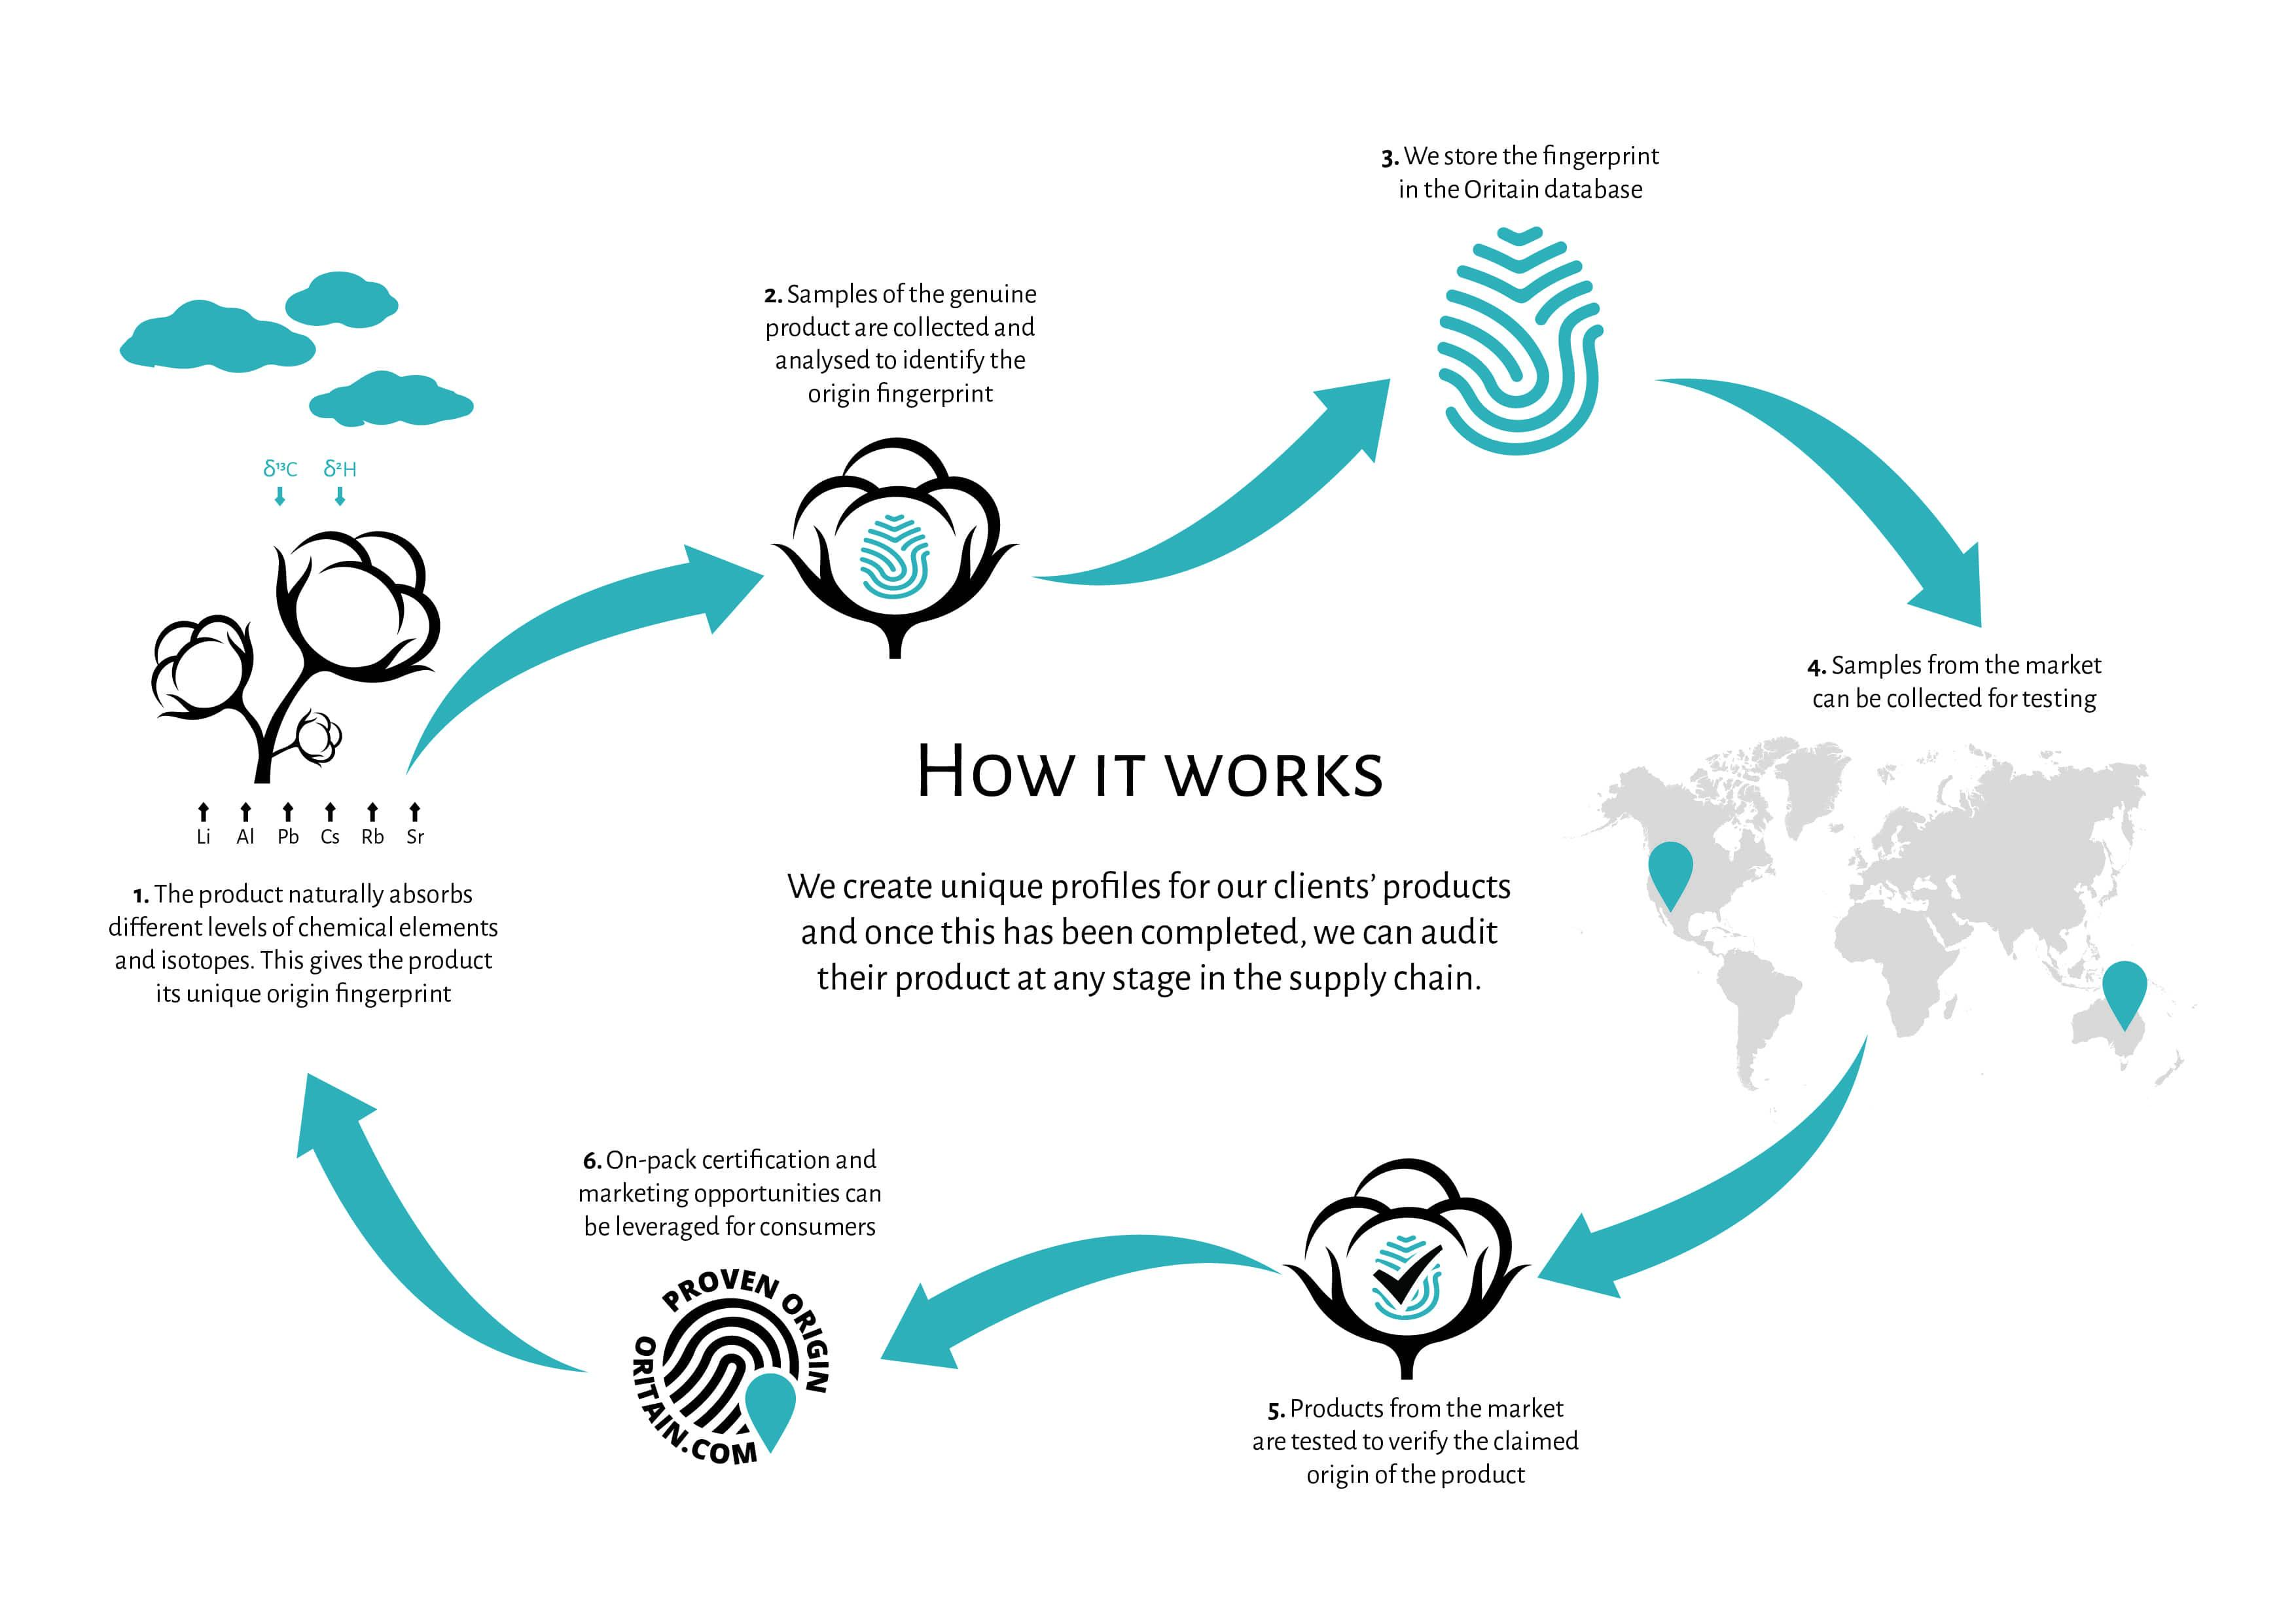 The image displays a flowchart to describe how Oritain work to validate samples of cotton in our supply chain.